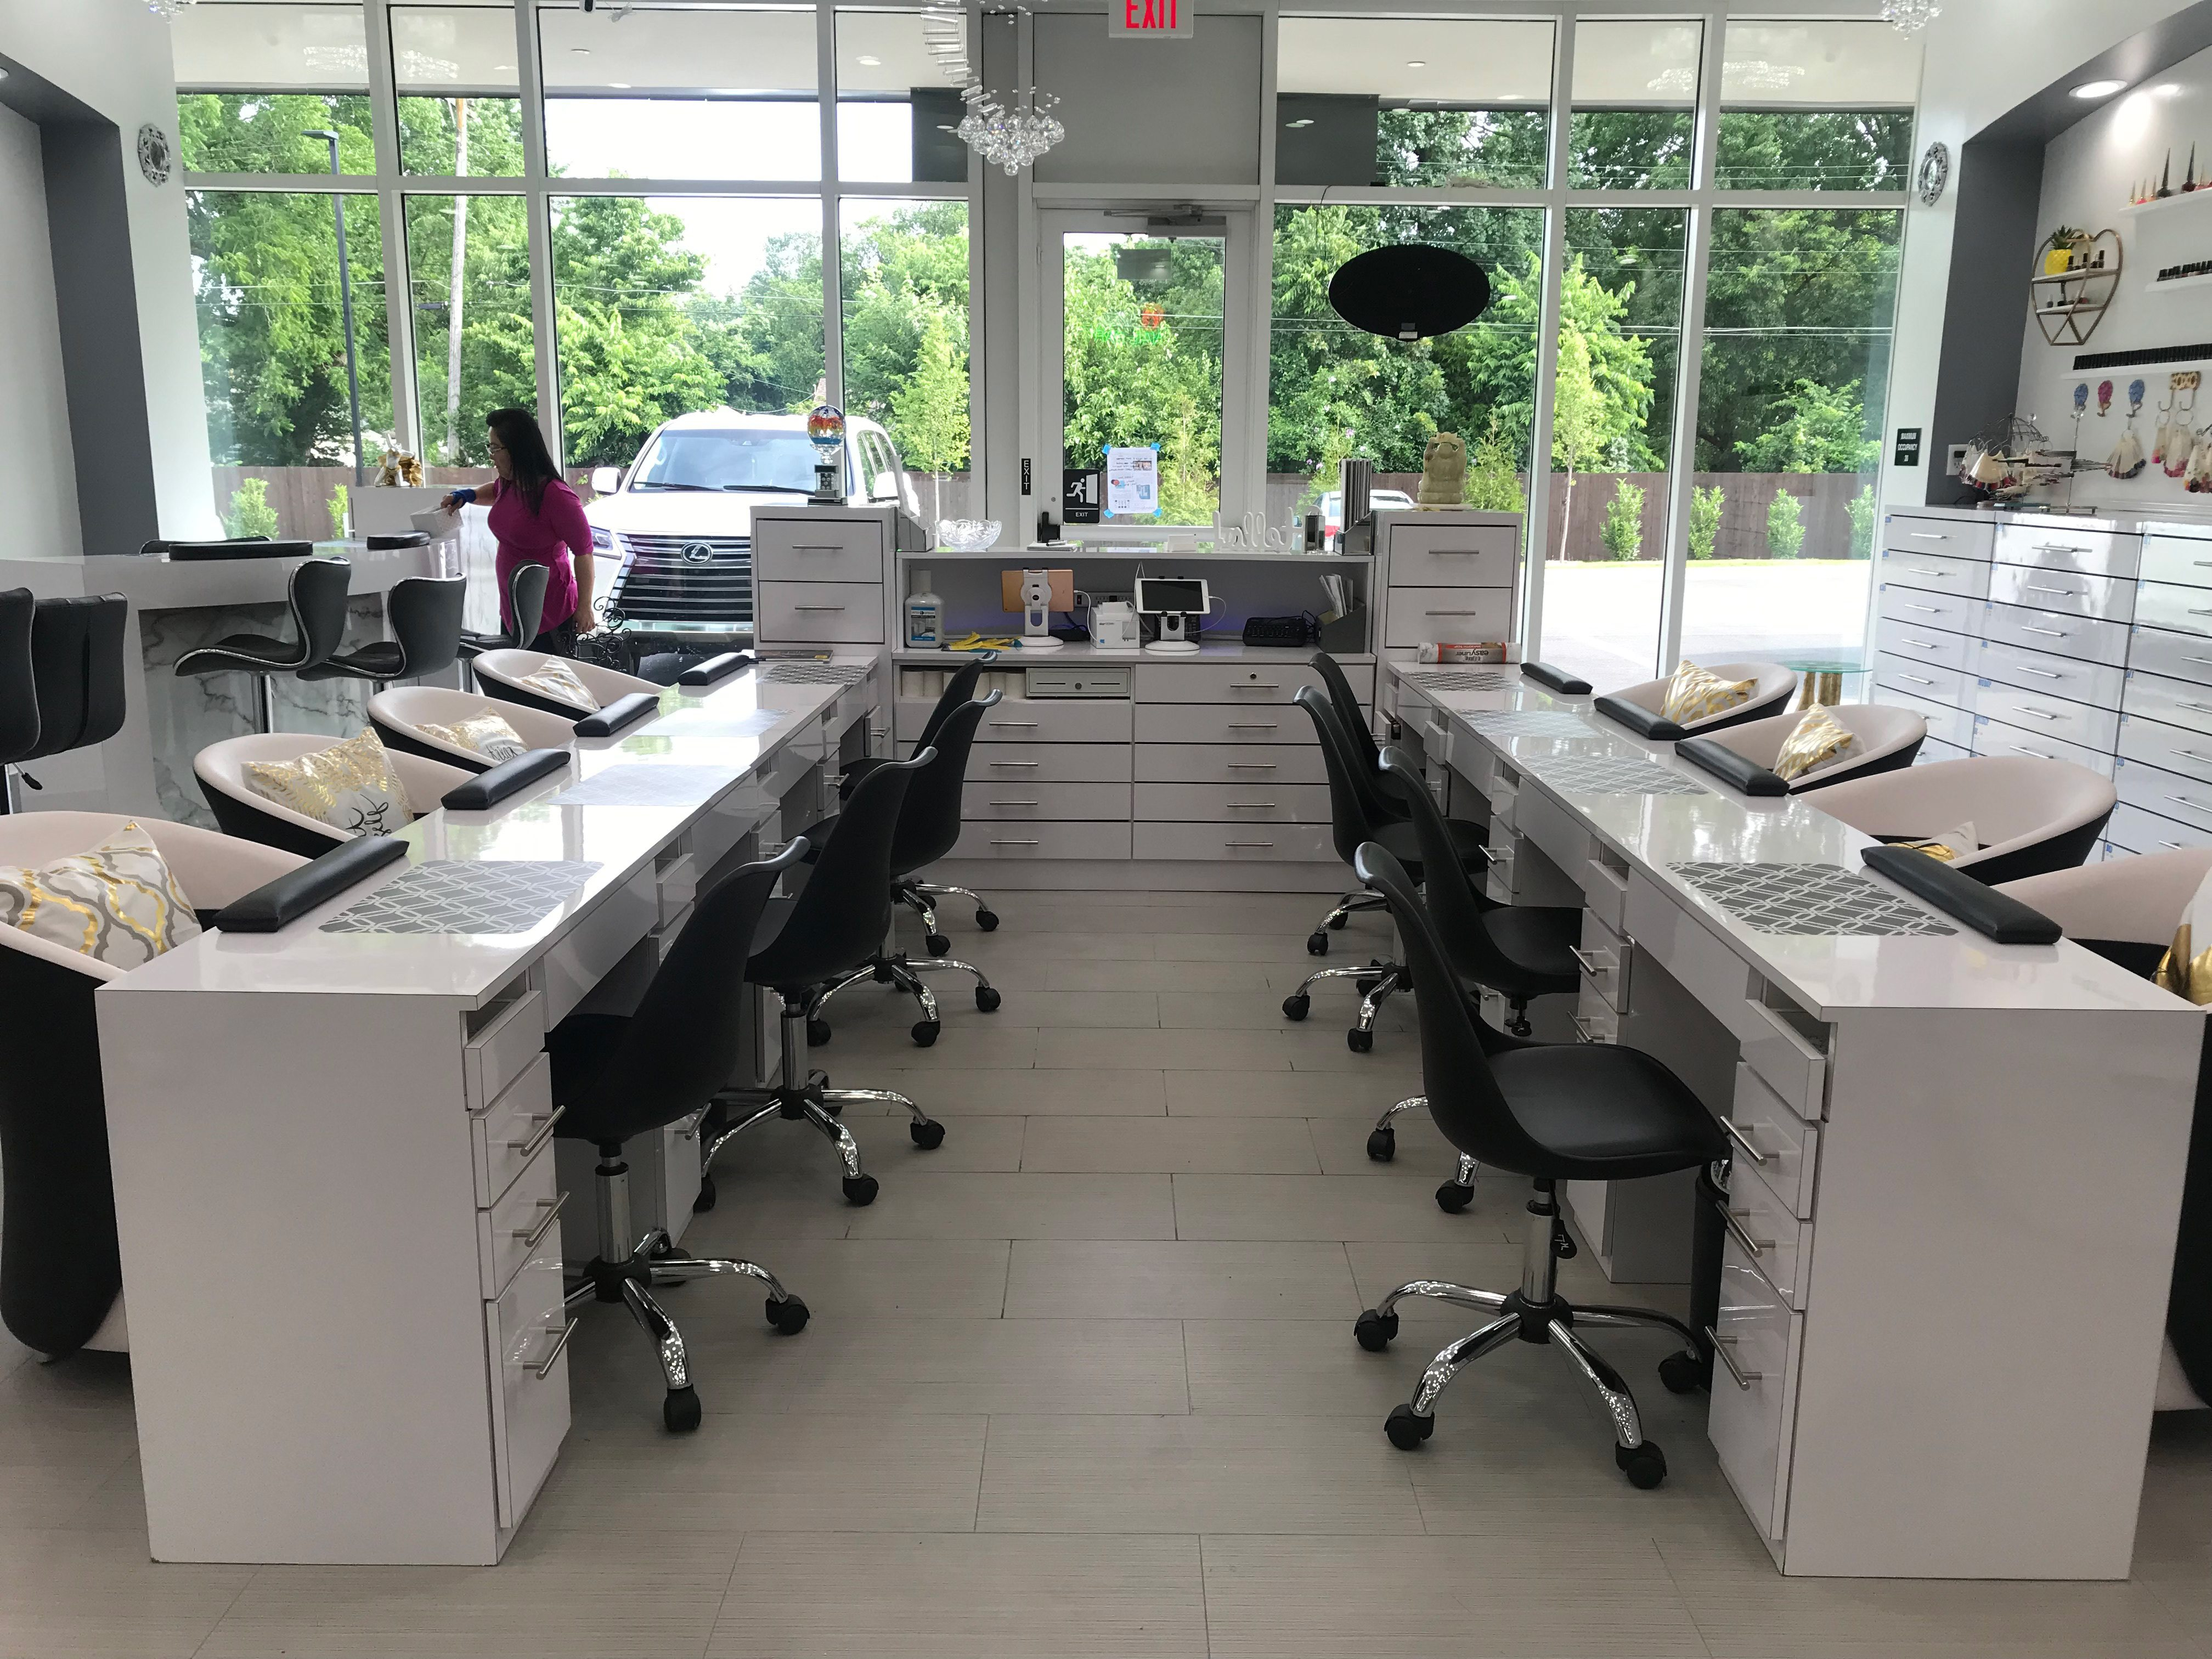 Venus Nail Bar houses eight manicure stations.